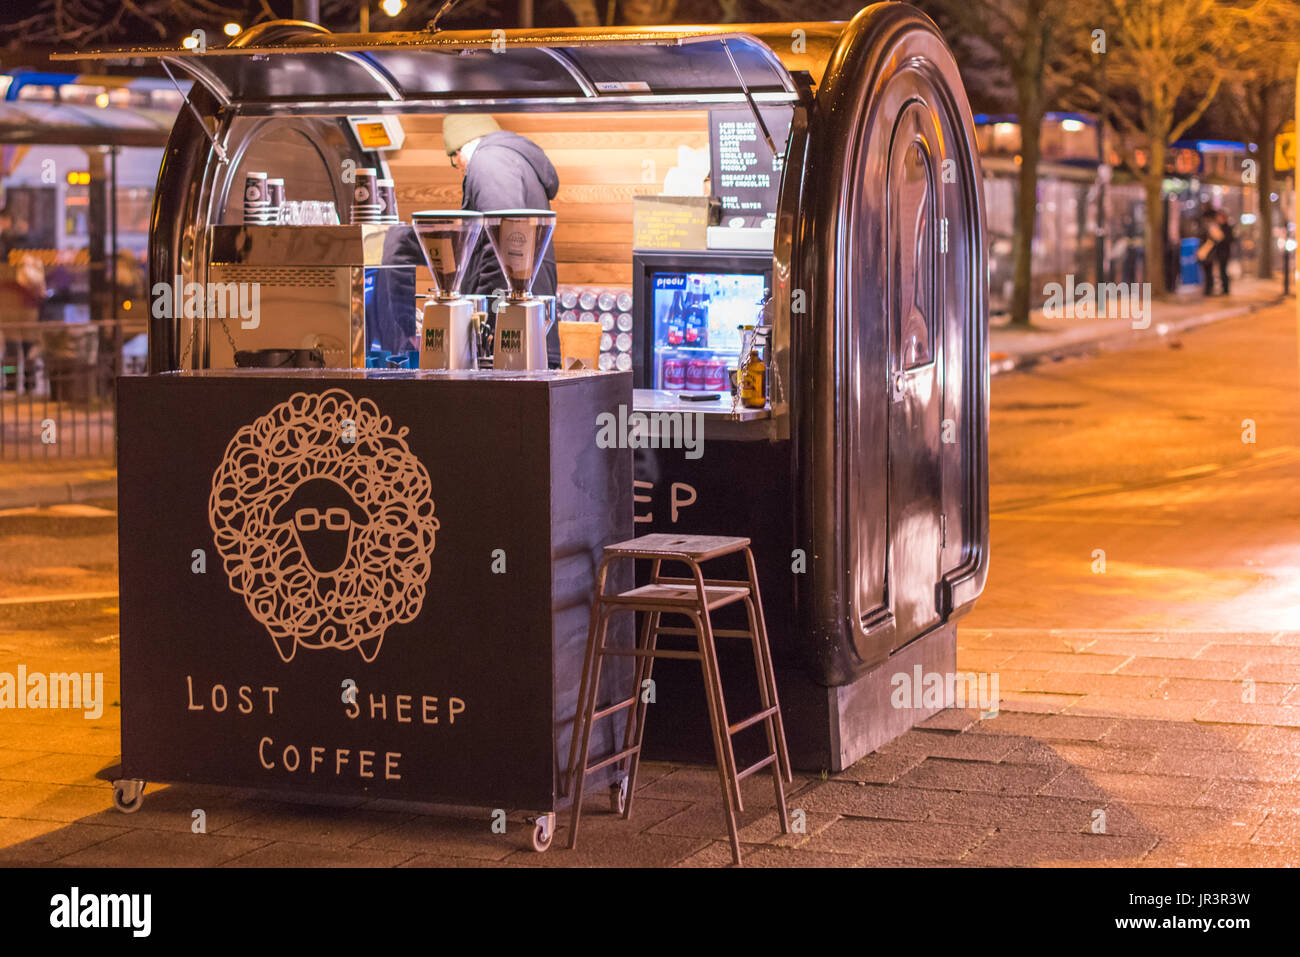 The Lost Sheep Coffee An Artisan Coffee Bar At The Top Of